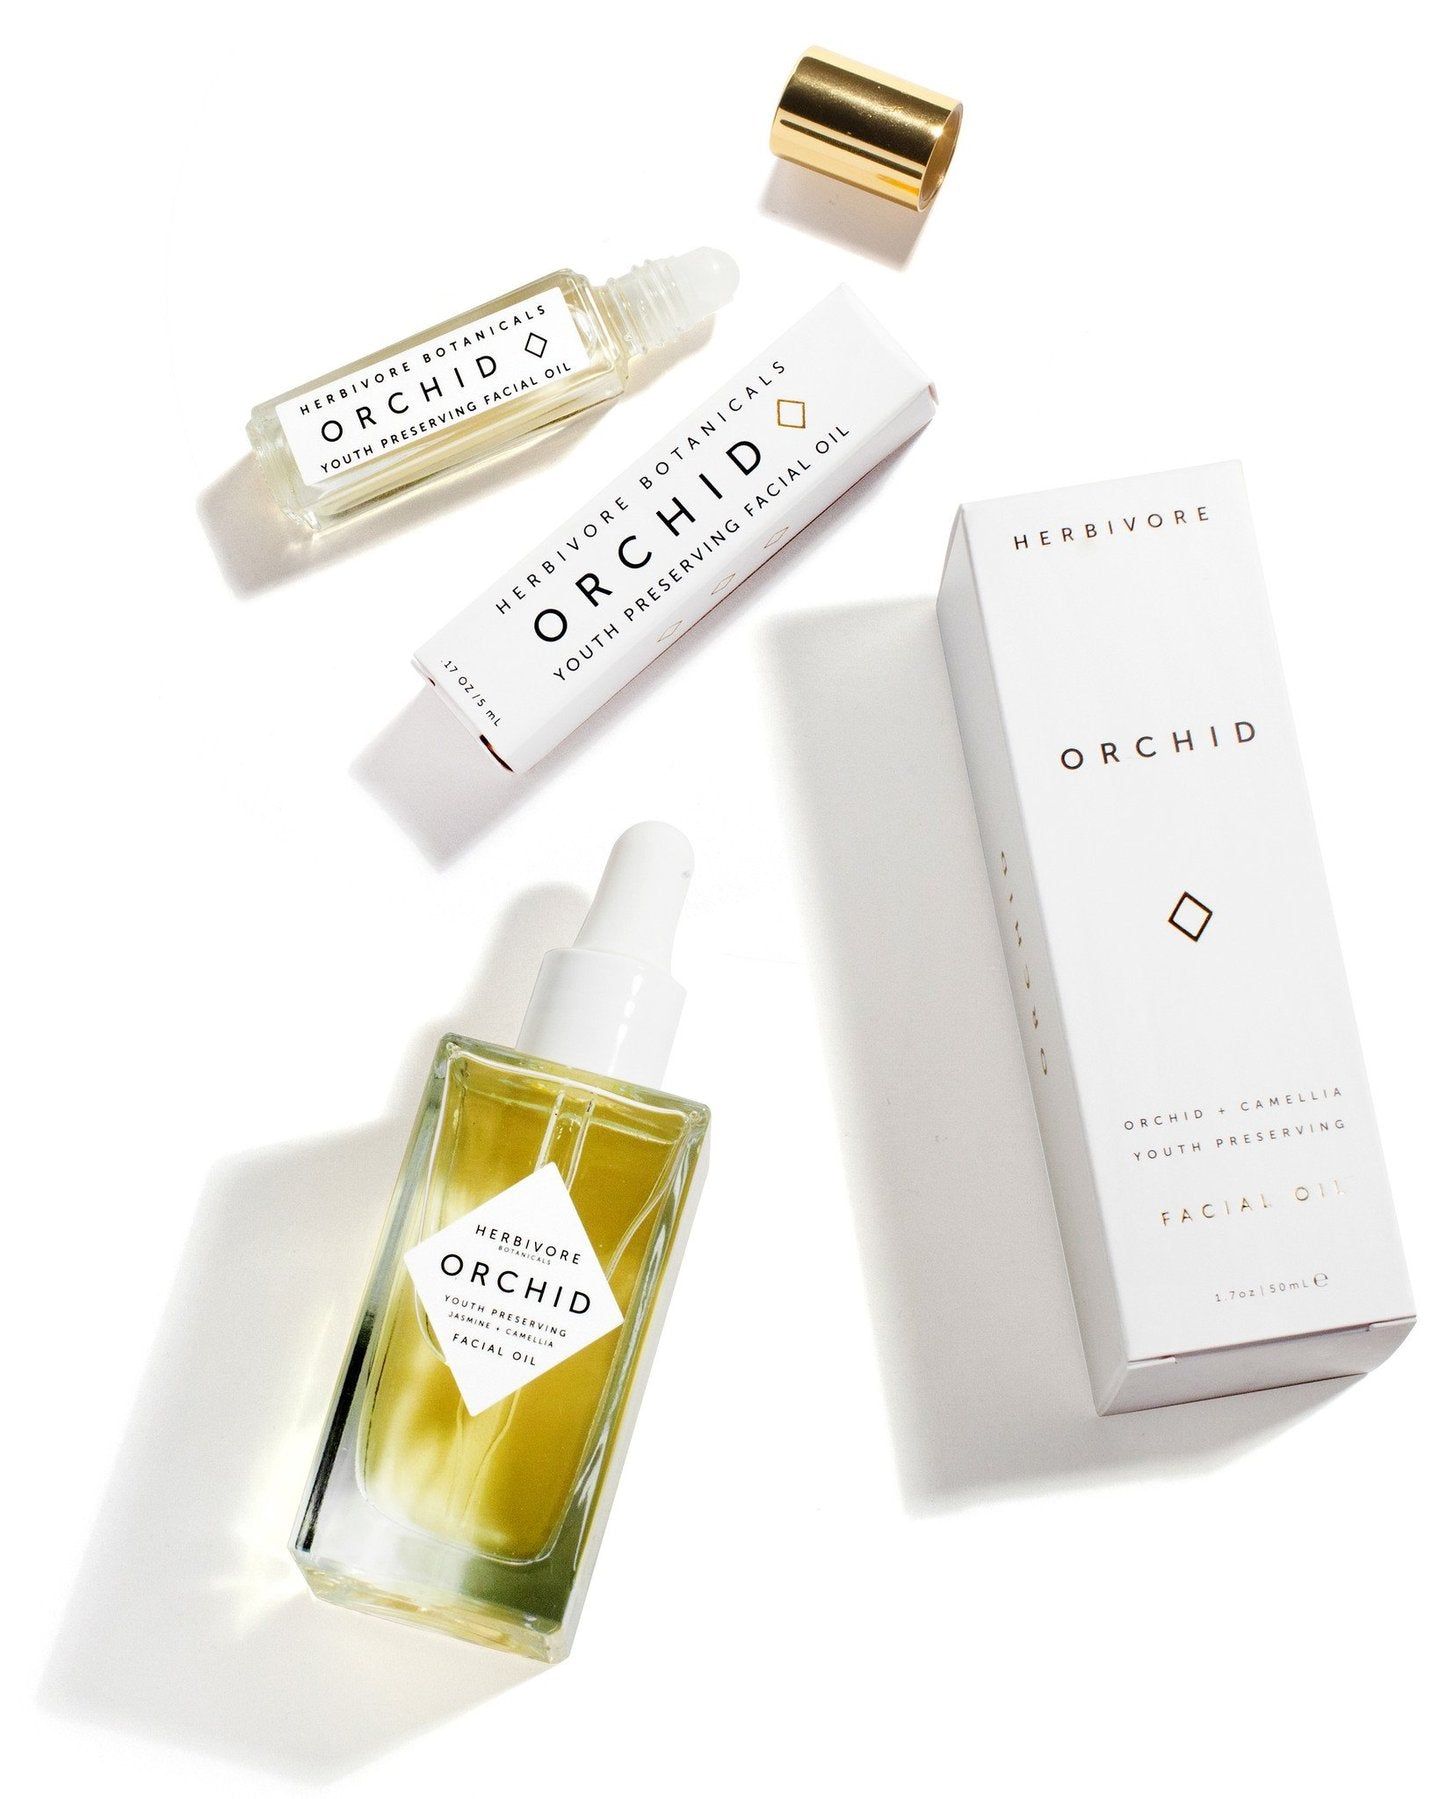 Orchid Facial Oil by Herbivore Botanicals